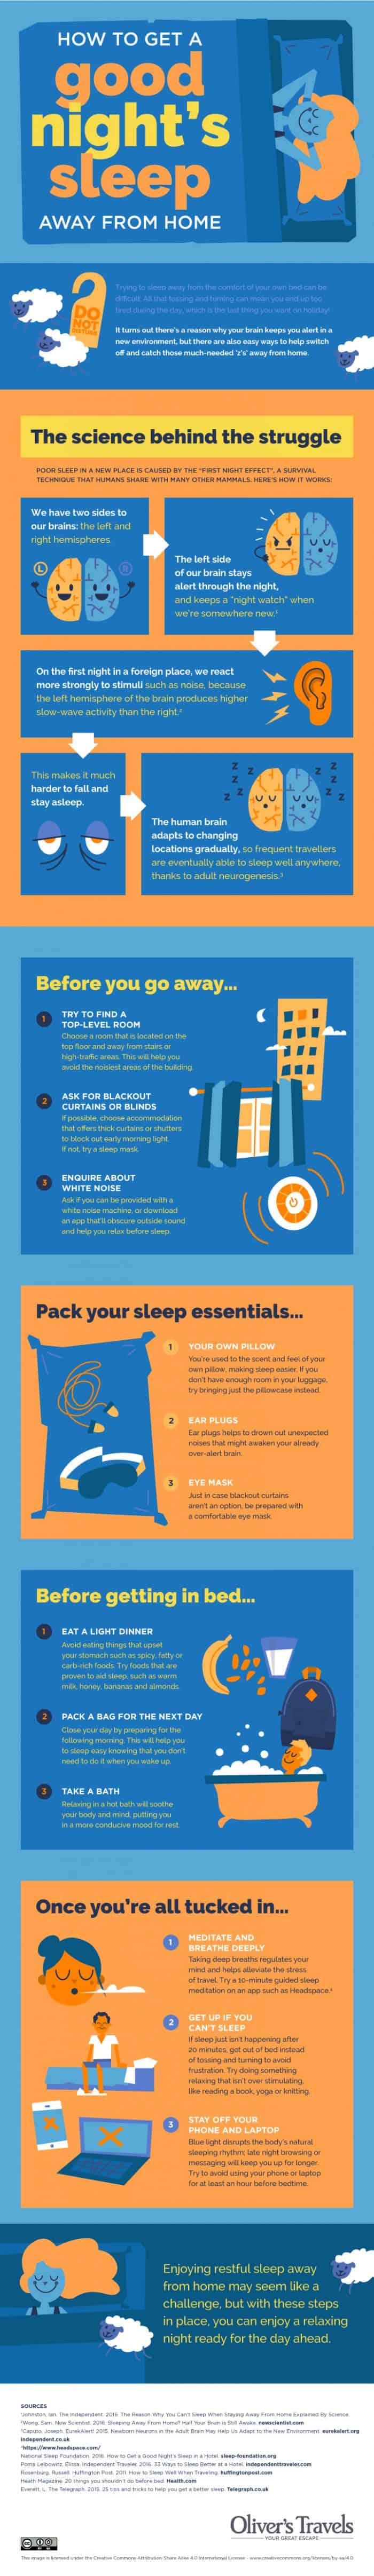 How Get a Good Night's Sleep Away From Home